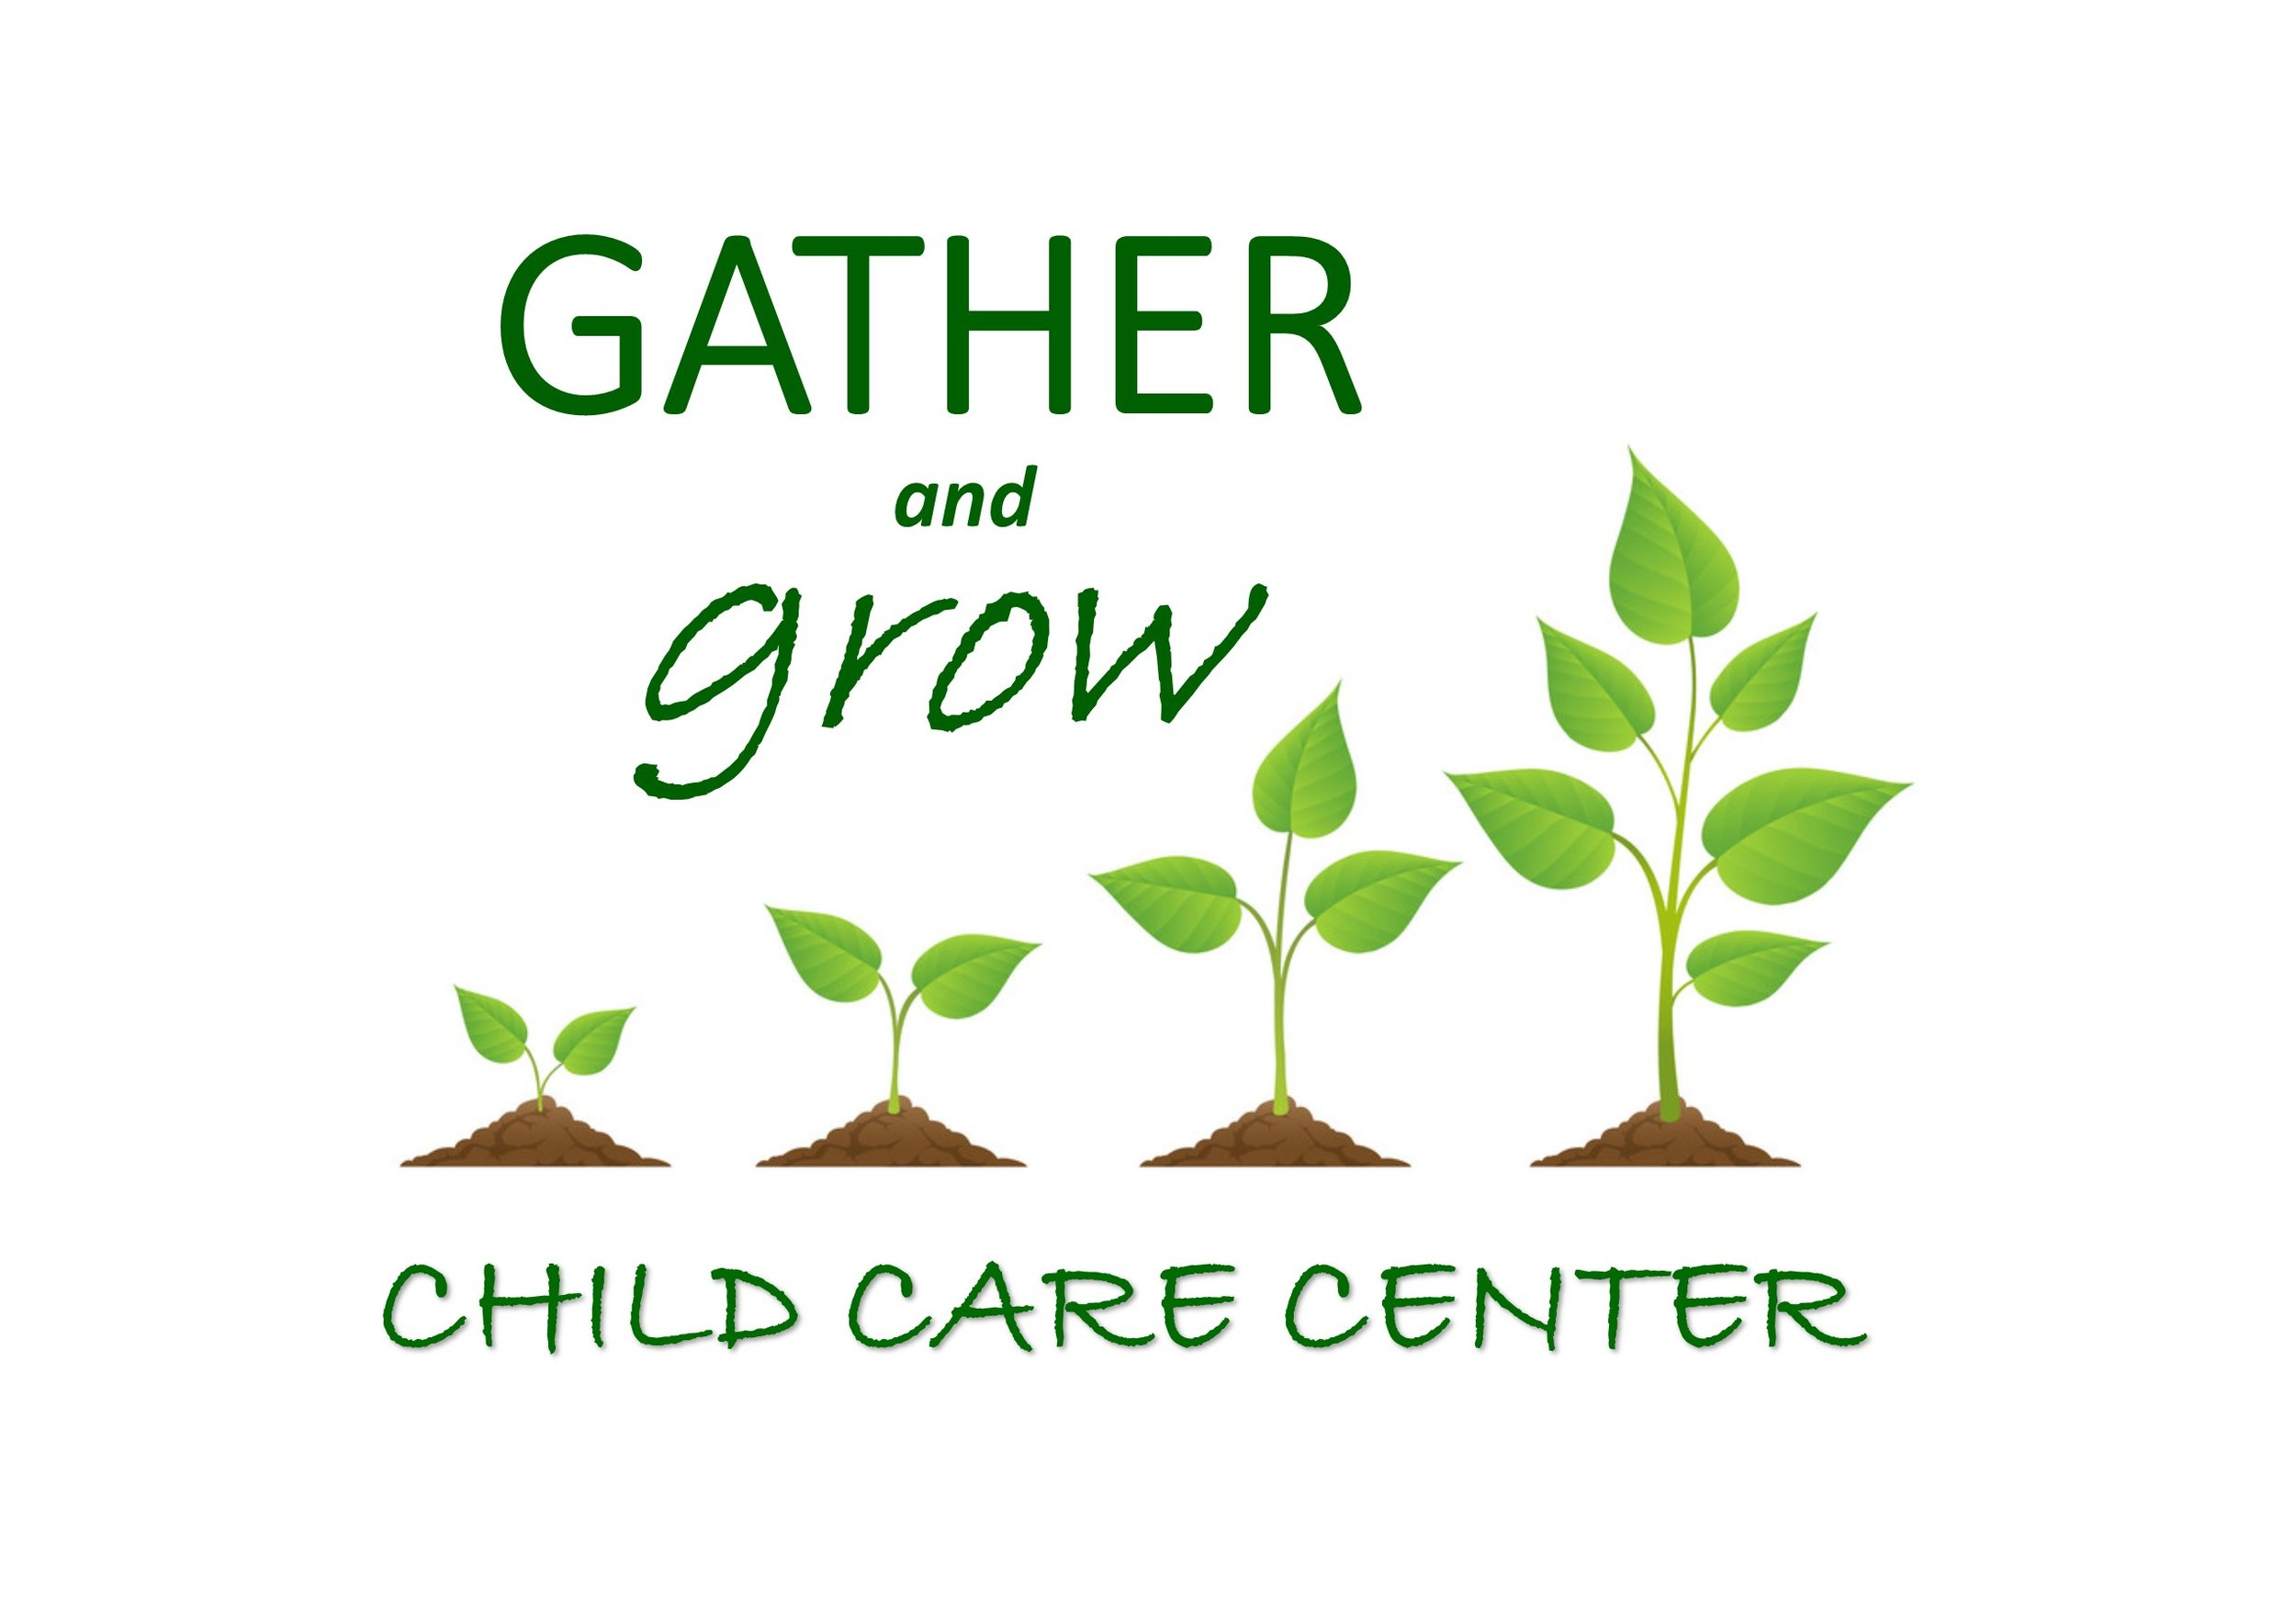 Gather and Grow - Our mission is to foster an environment in which children feel safe, respected and loved as they learn about the world around them.Hours: 6:00AM - 6:00PMAddress: 104 S. Rock St. Centralia, WashingtonCall: (360) 807-4555https://www.facebook.com/gatherandgrowchildcare/